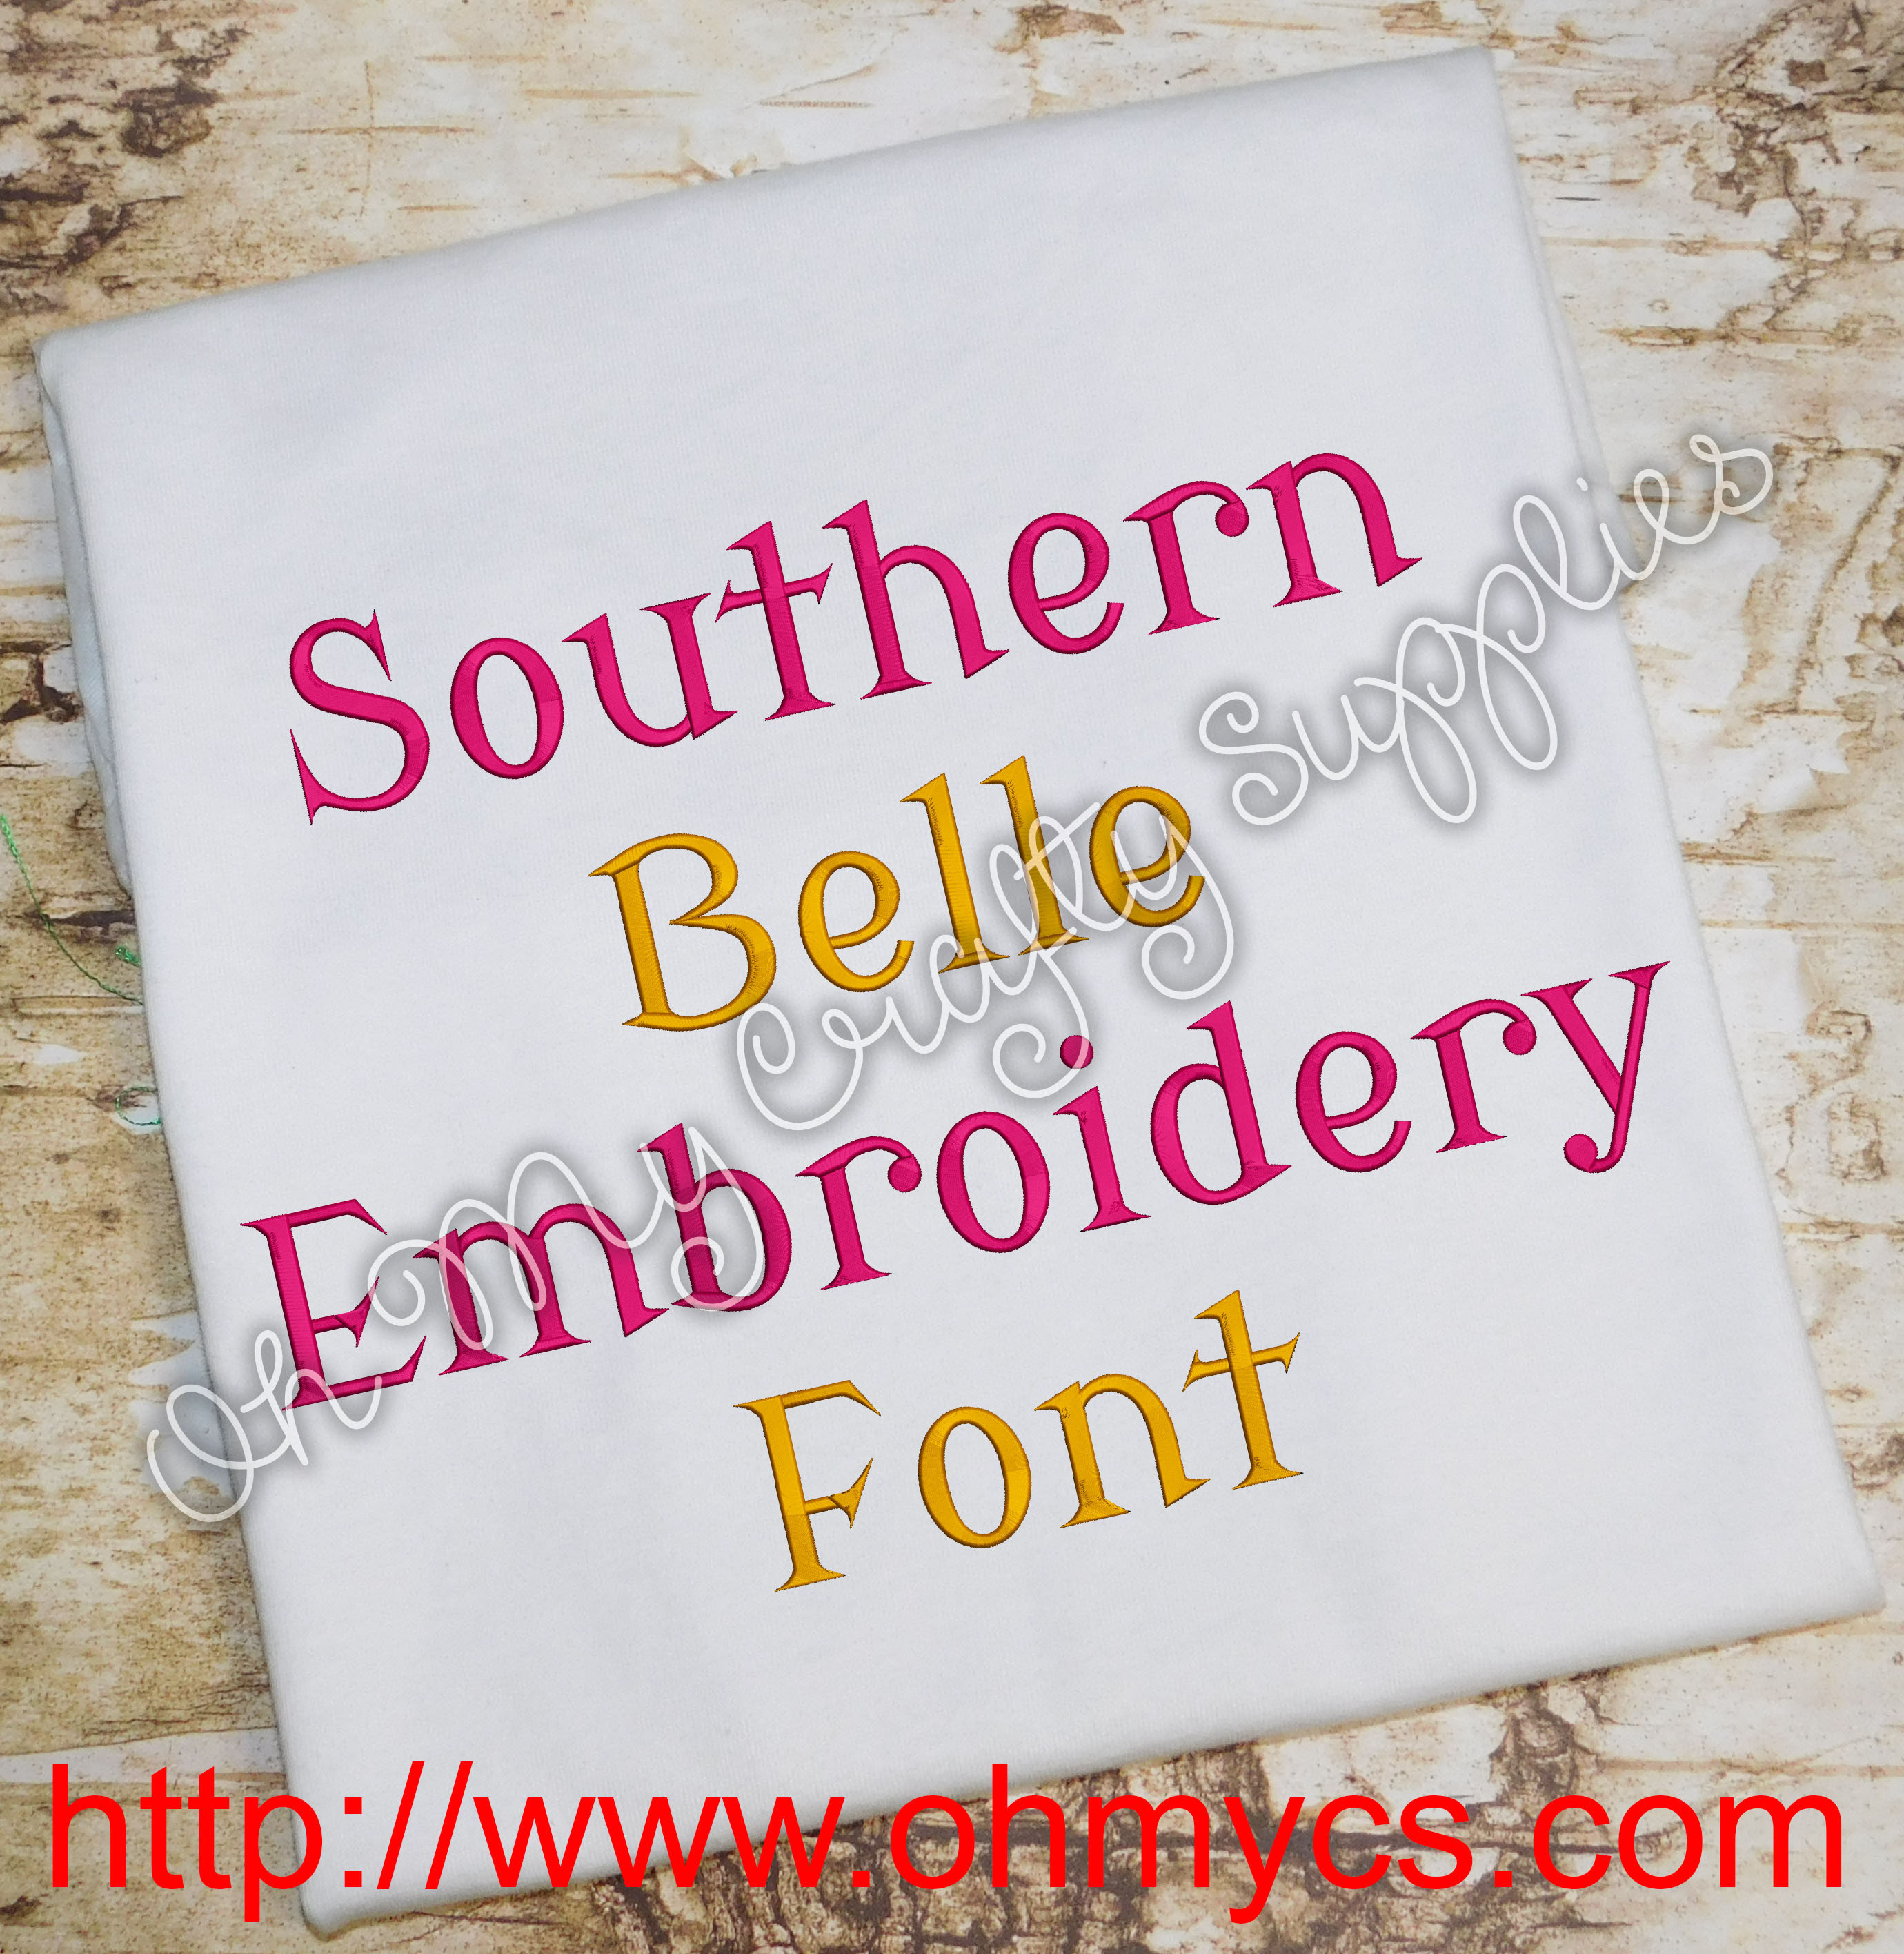 Southern Belle Embroidery Font Bx Included